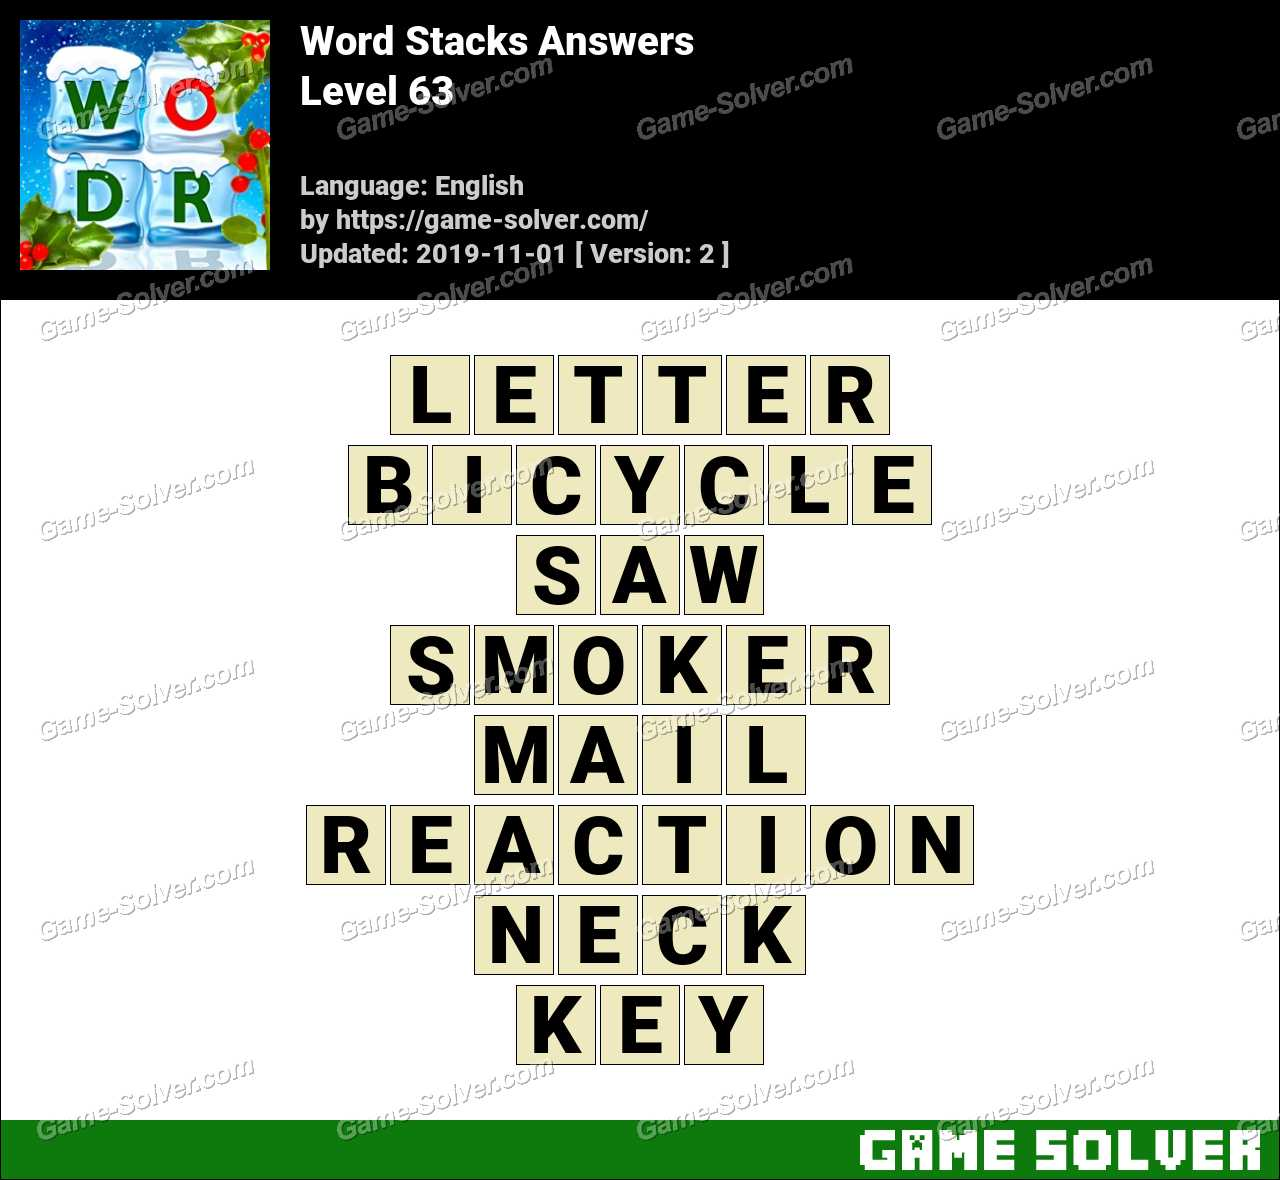 Word Stacks Level 63 Answers